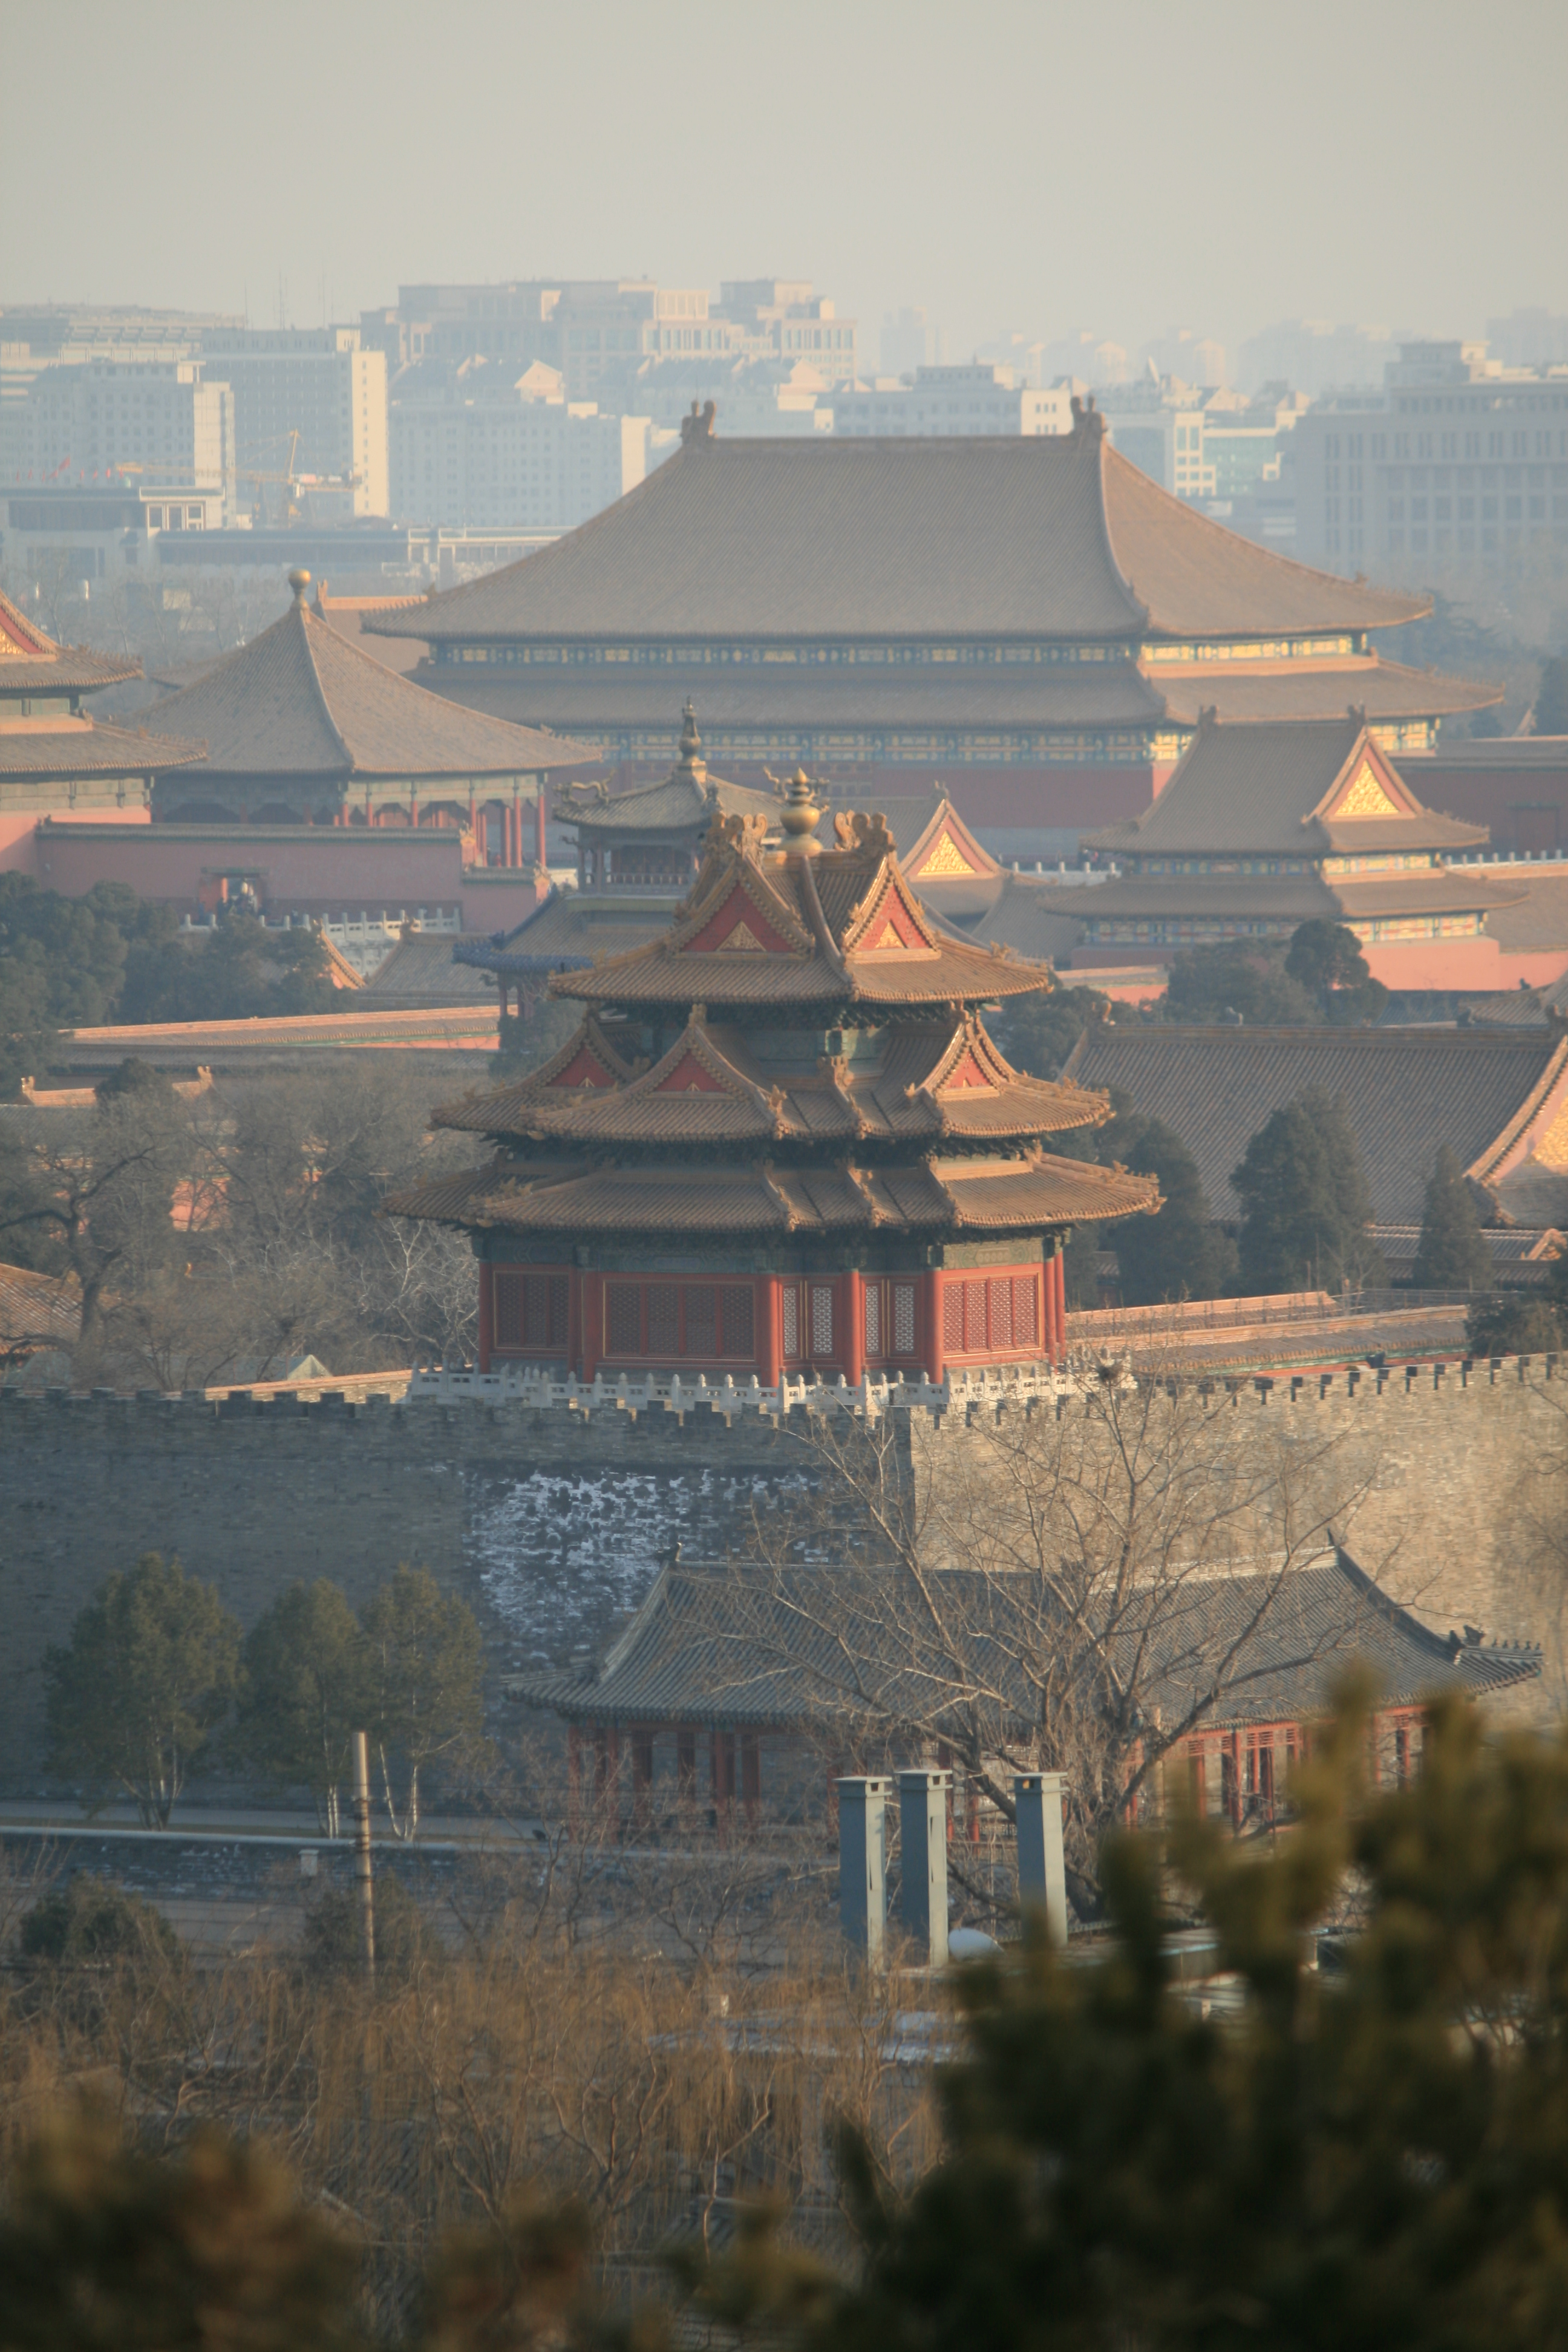 Workers' Stadium Beijing, Beijing Update: School's in, Winter's out, and I'm old | Beijing ...